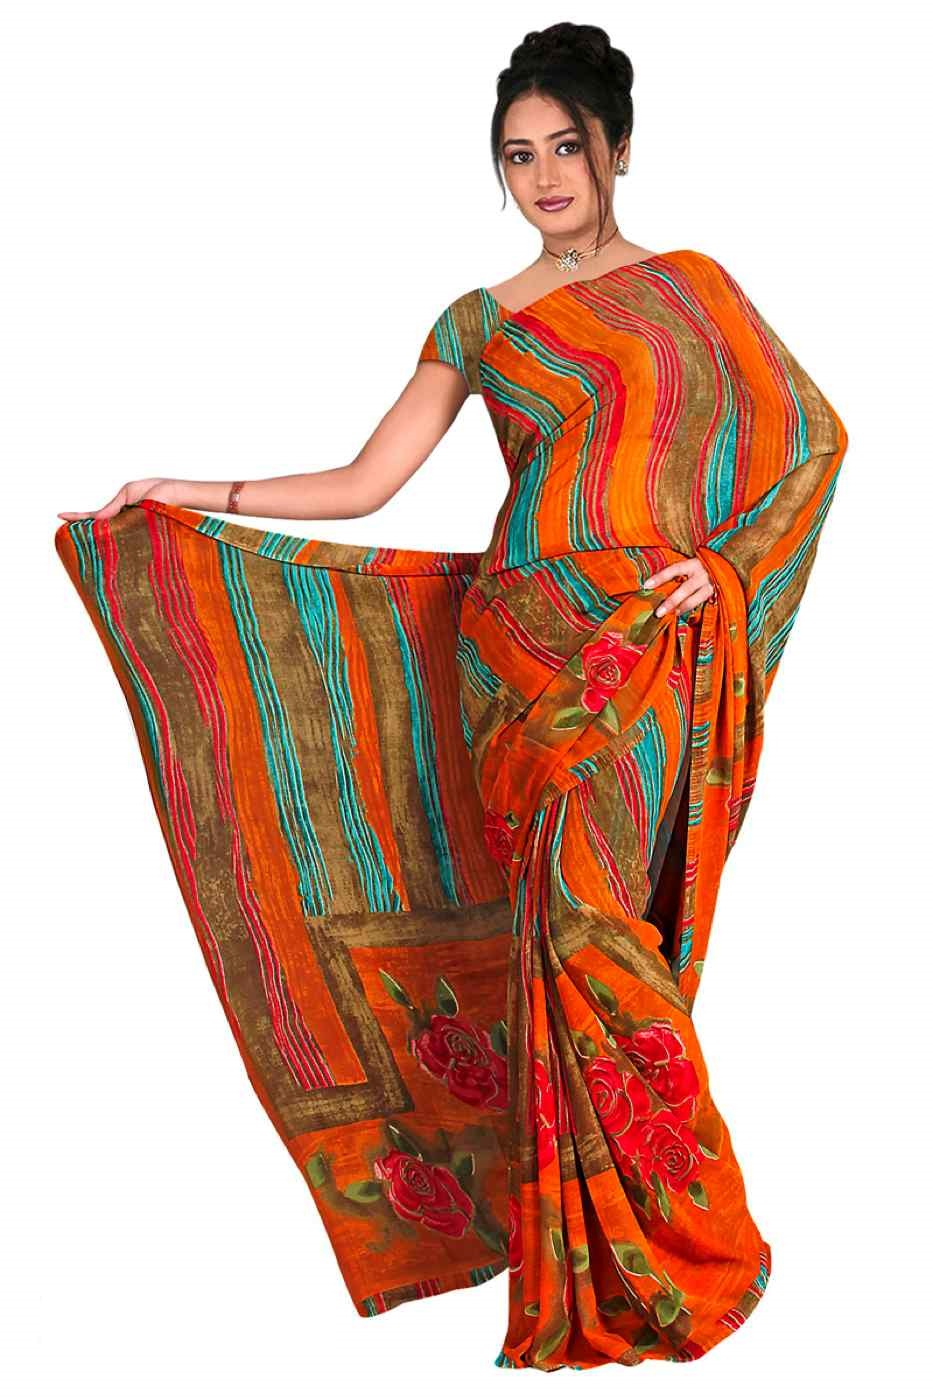 Indian Selections Bhanumati Georgette Printed Casual Saree Sari Bellydance fabric at Sears.com